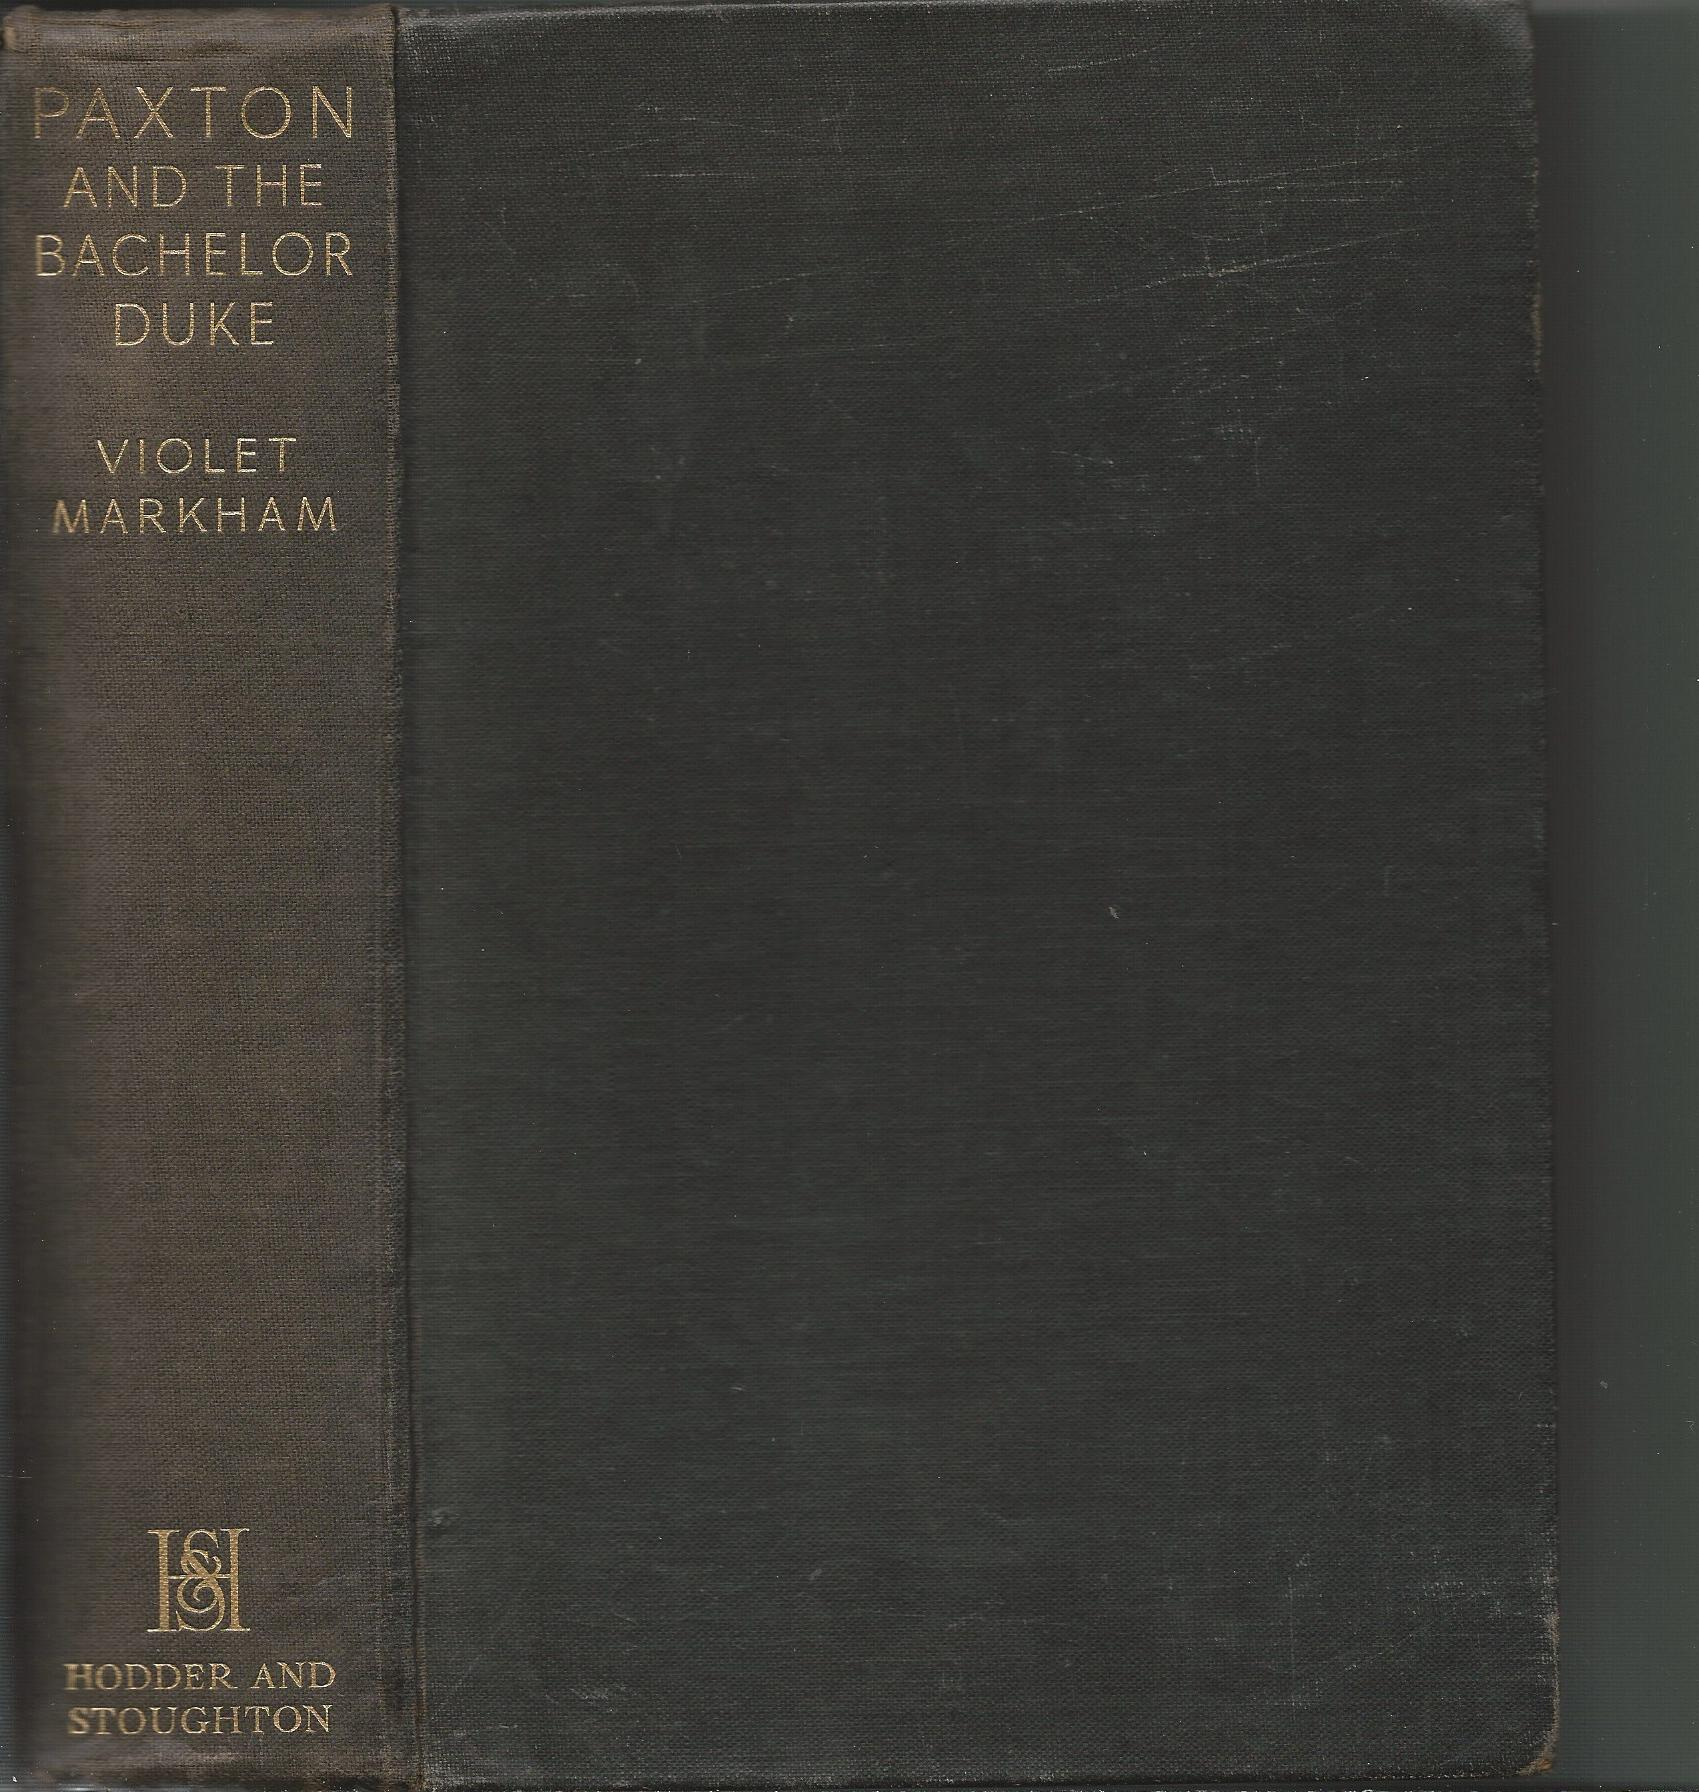 Image for Paxton and Batchelor Duke.